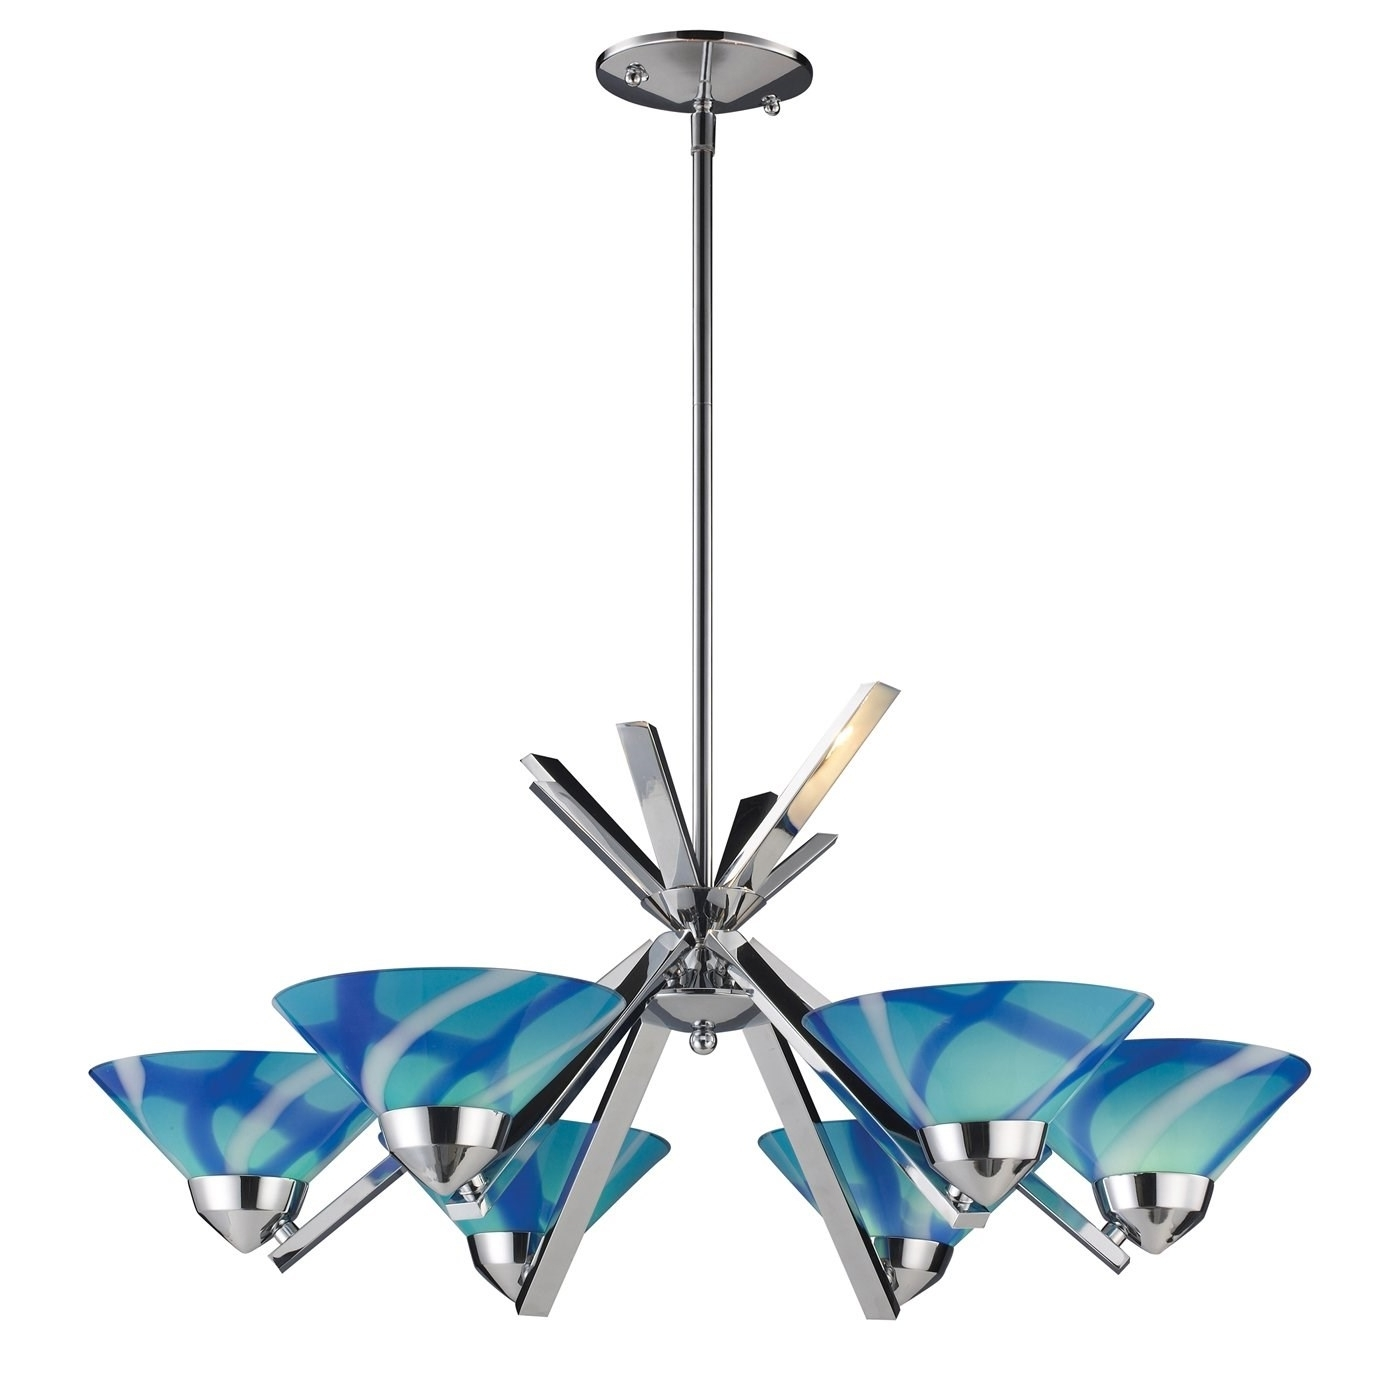 Elk 1475 6Car Refraction 6 Light Chandelier In Polished Chrome With For Most Recent Turquoise Glass Chandelier Lighting (View 2 of 15)